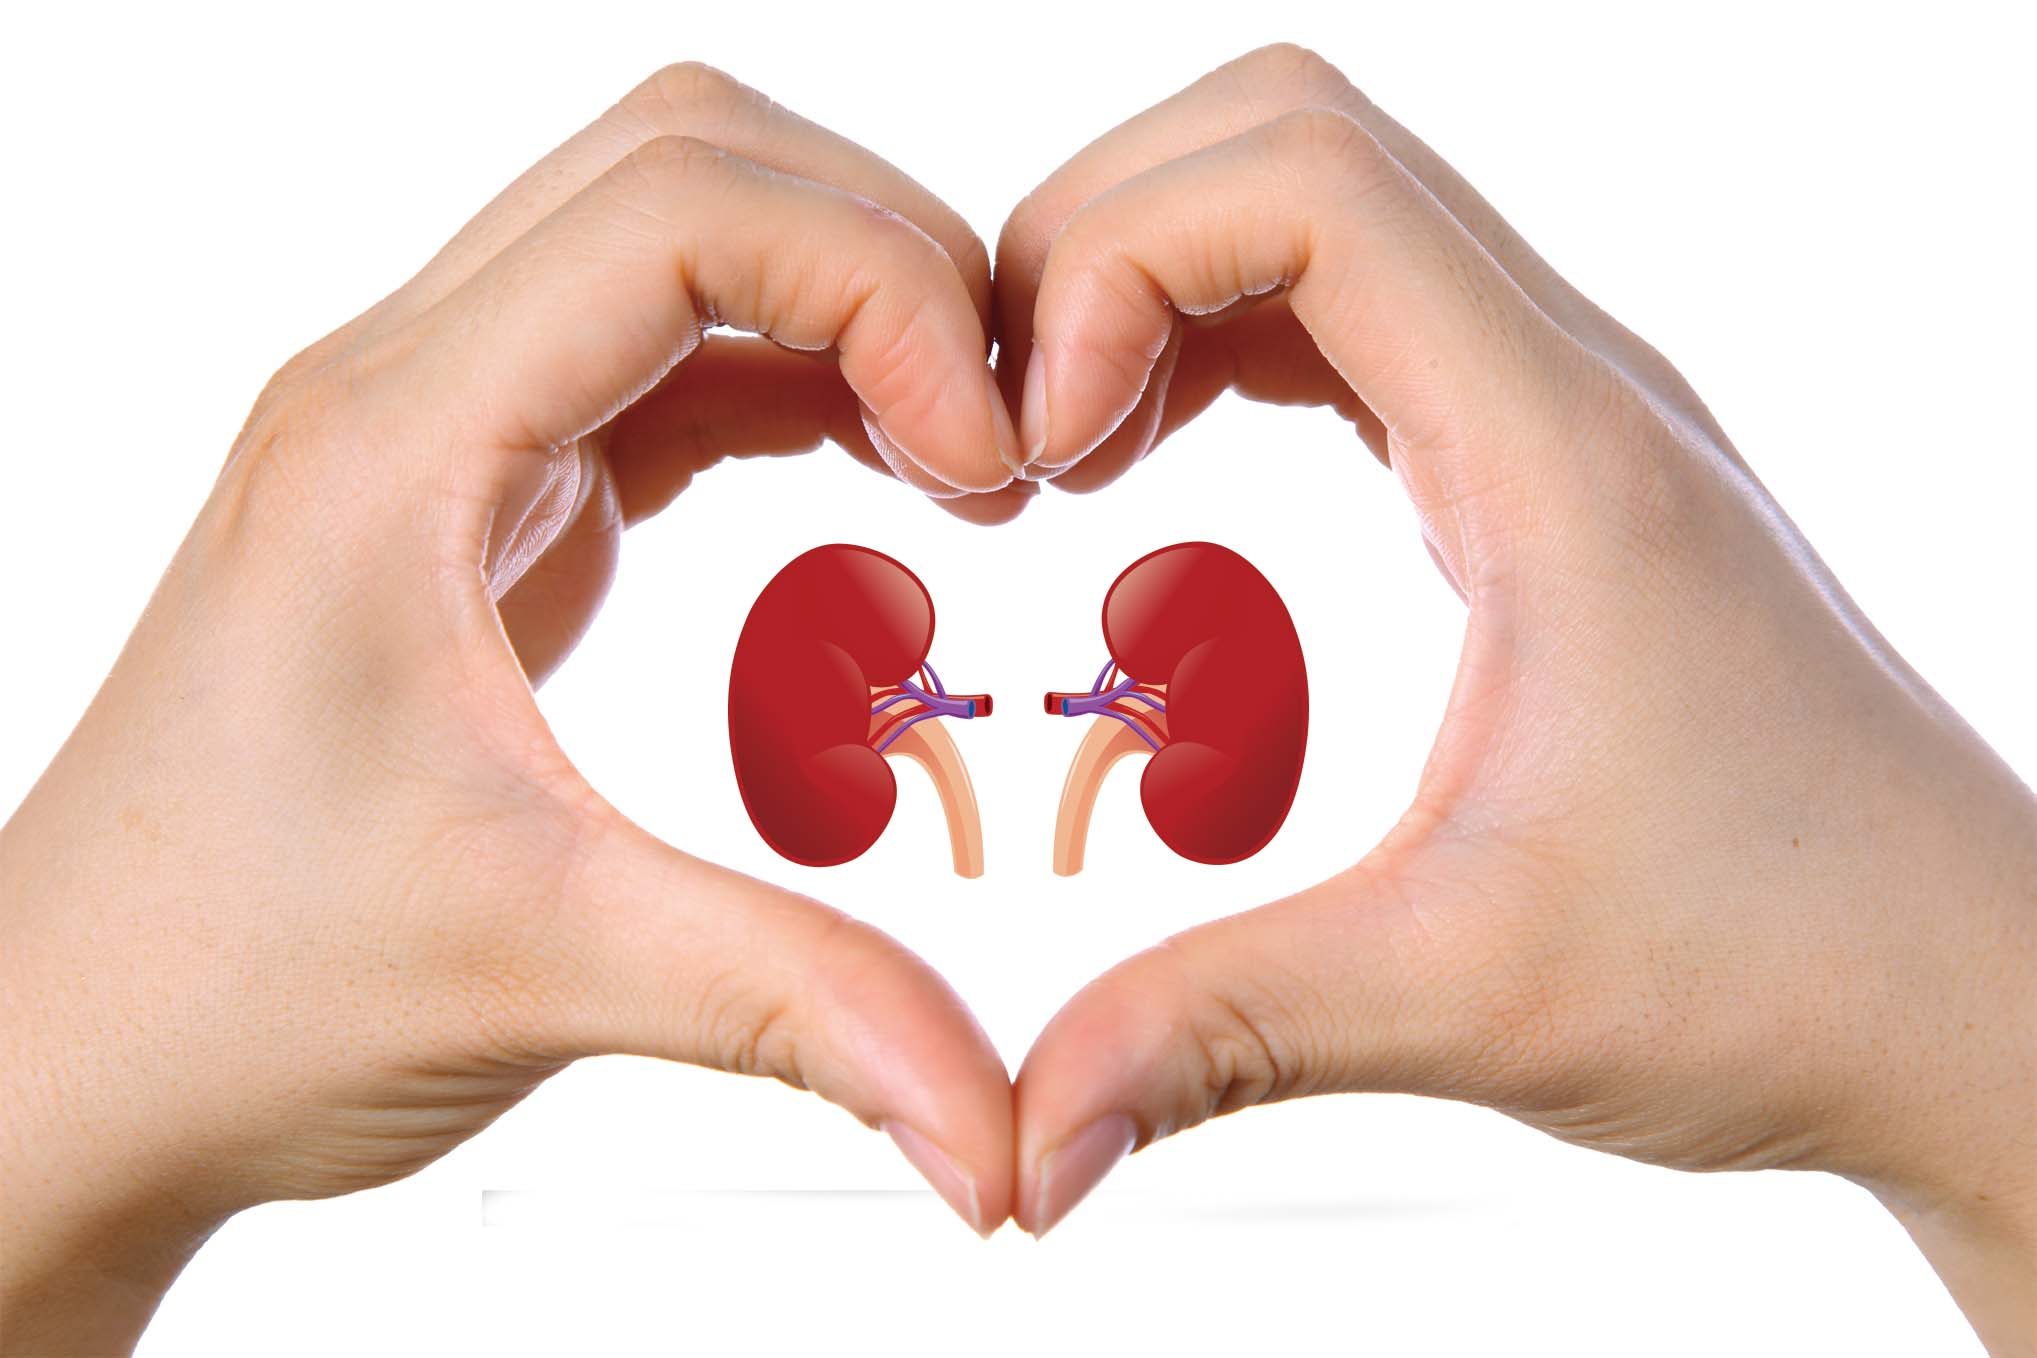 5 tips to keep kidneys healthy